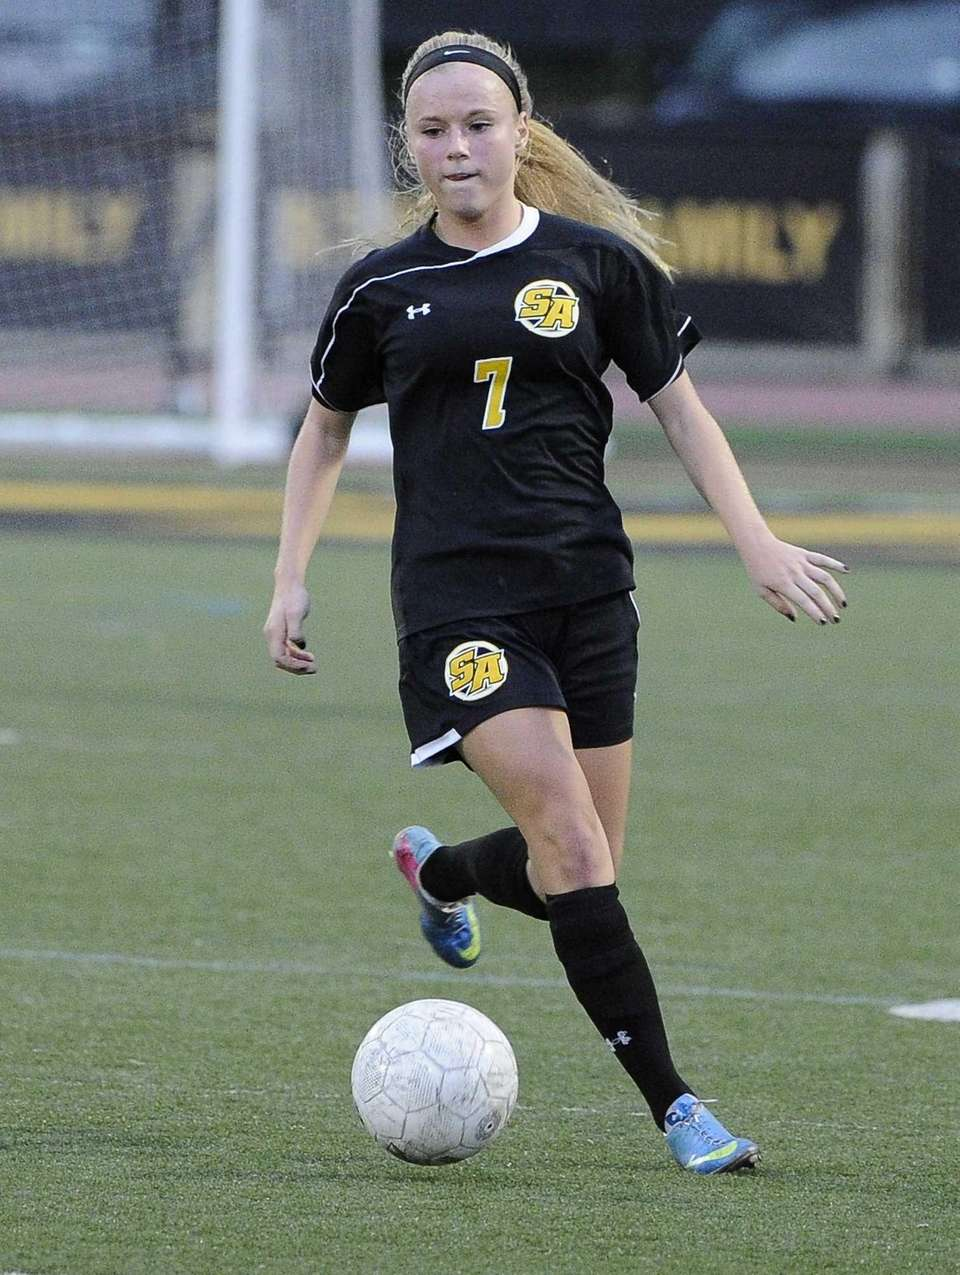 St. Anthony's MacKenzie Kober controls the ball against